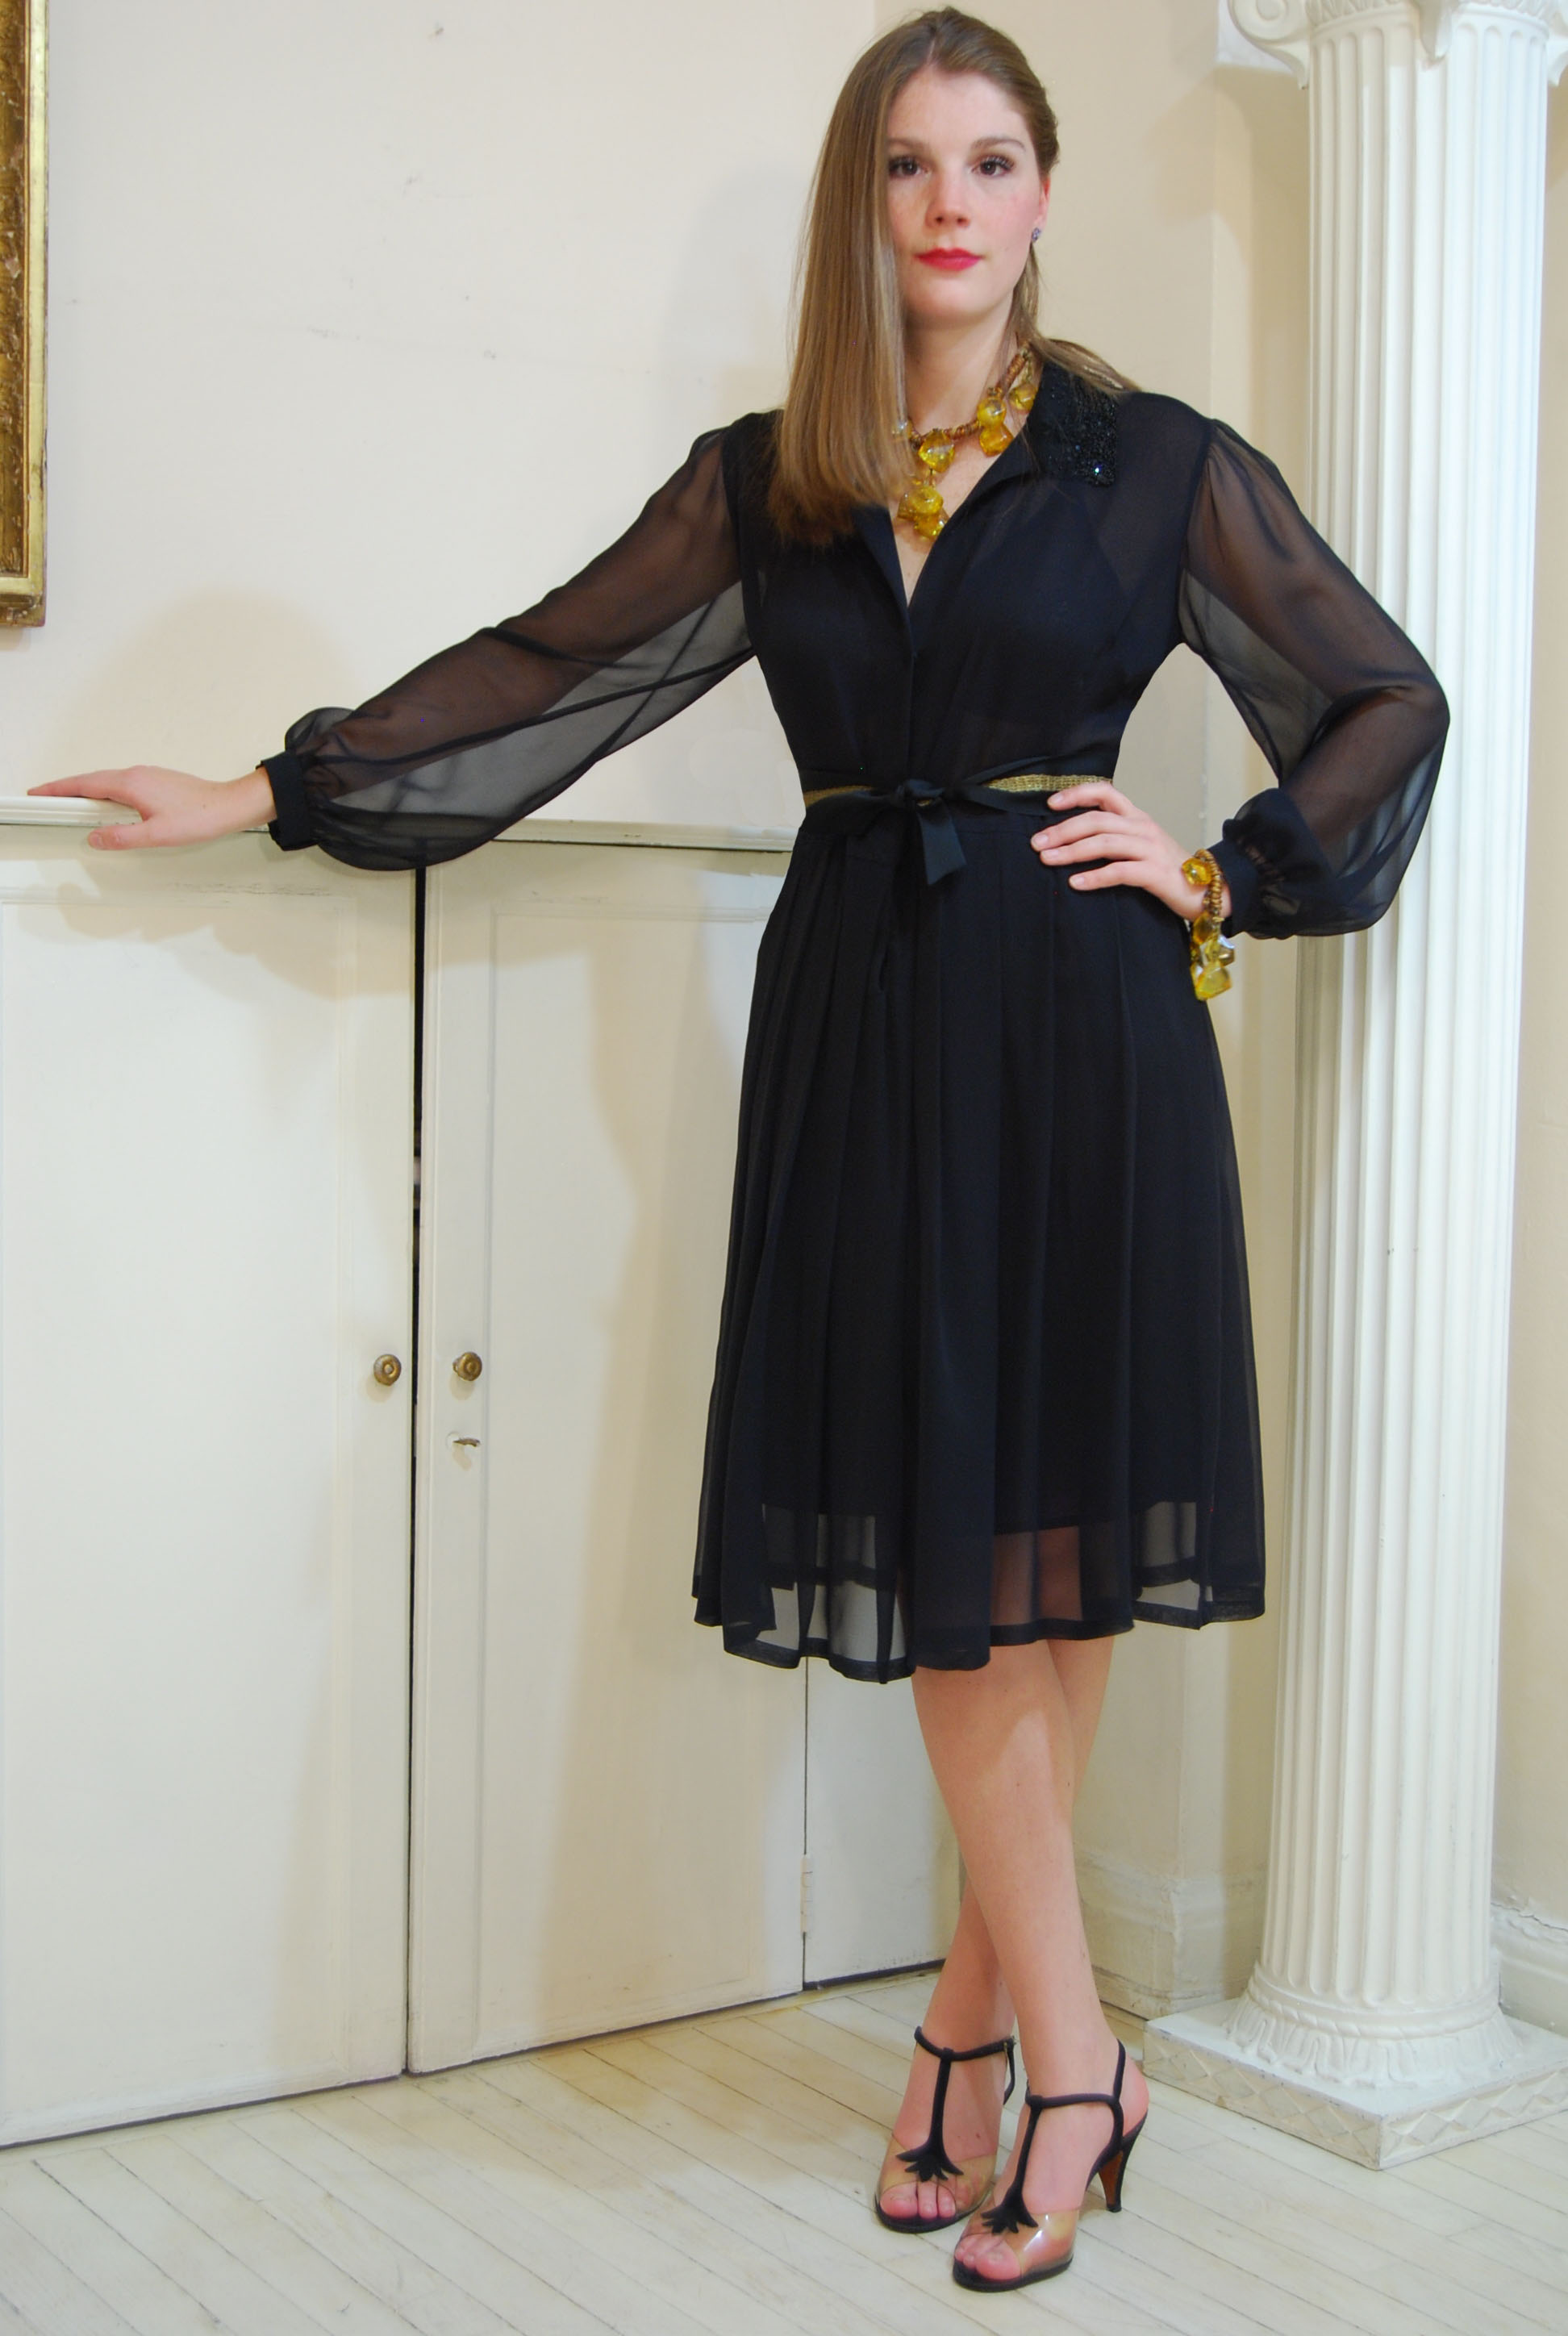 Silk Chiffon shirt dress with snap closure - sold - Special order - contact me on contact page for details